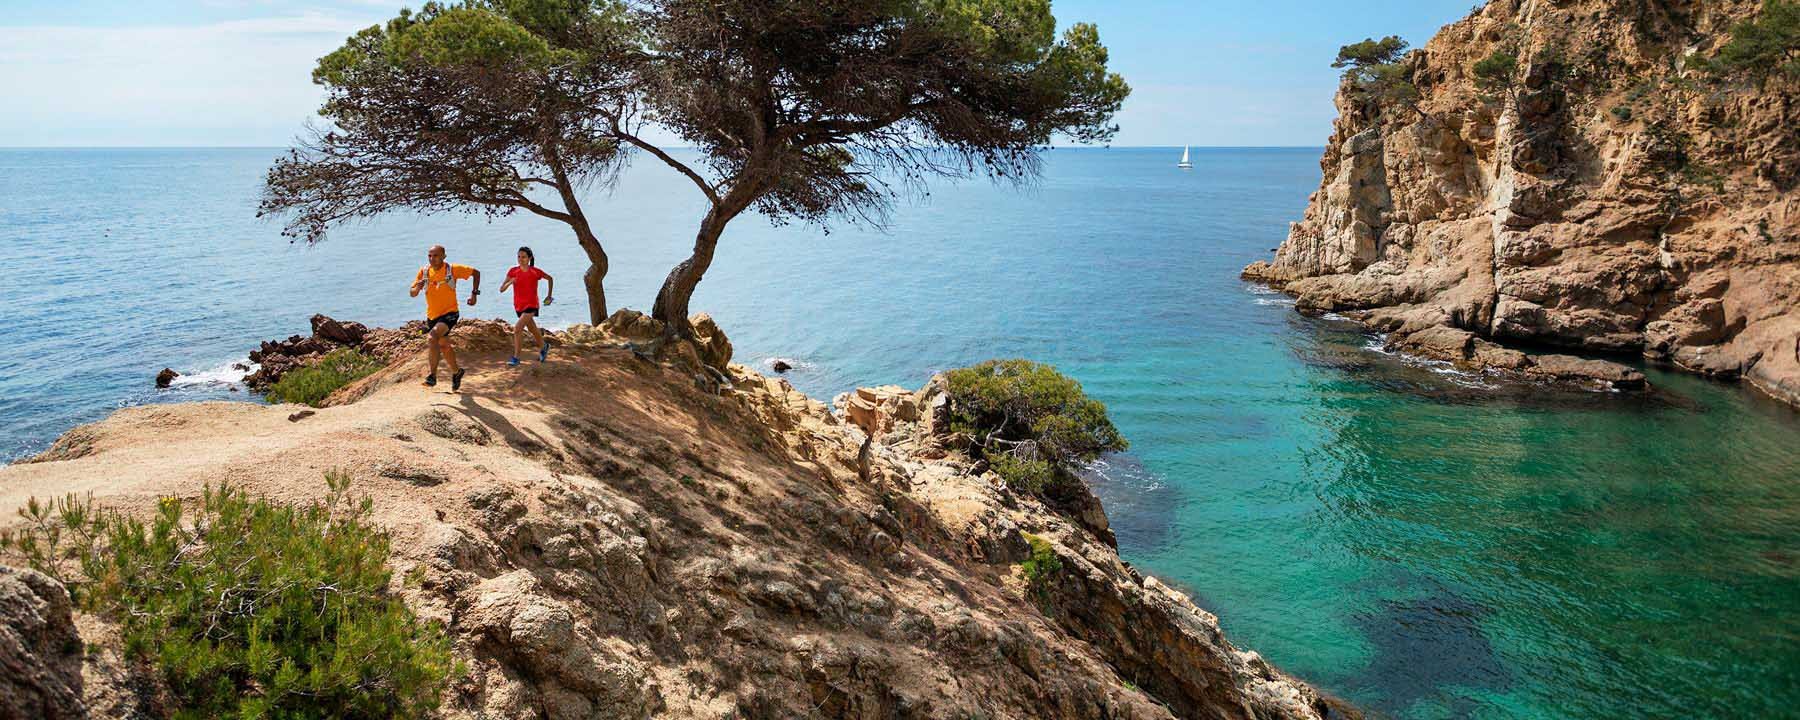 Trail running on the Costa Brava